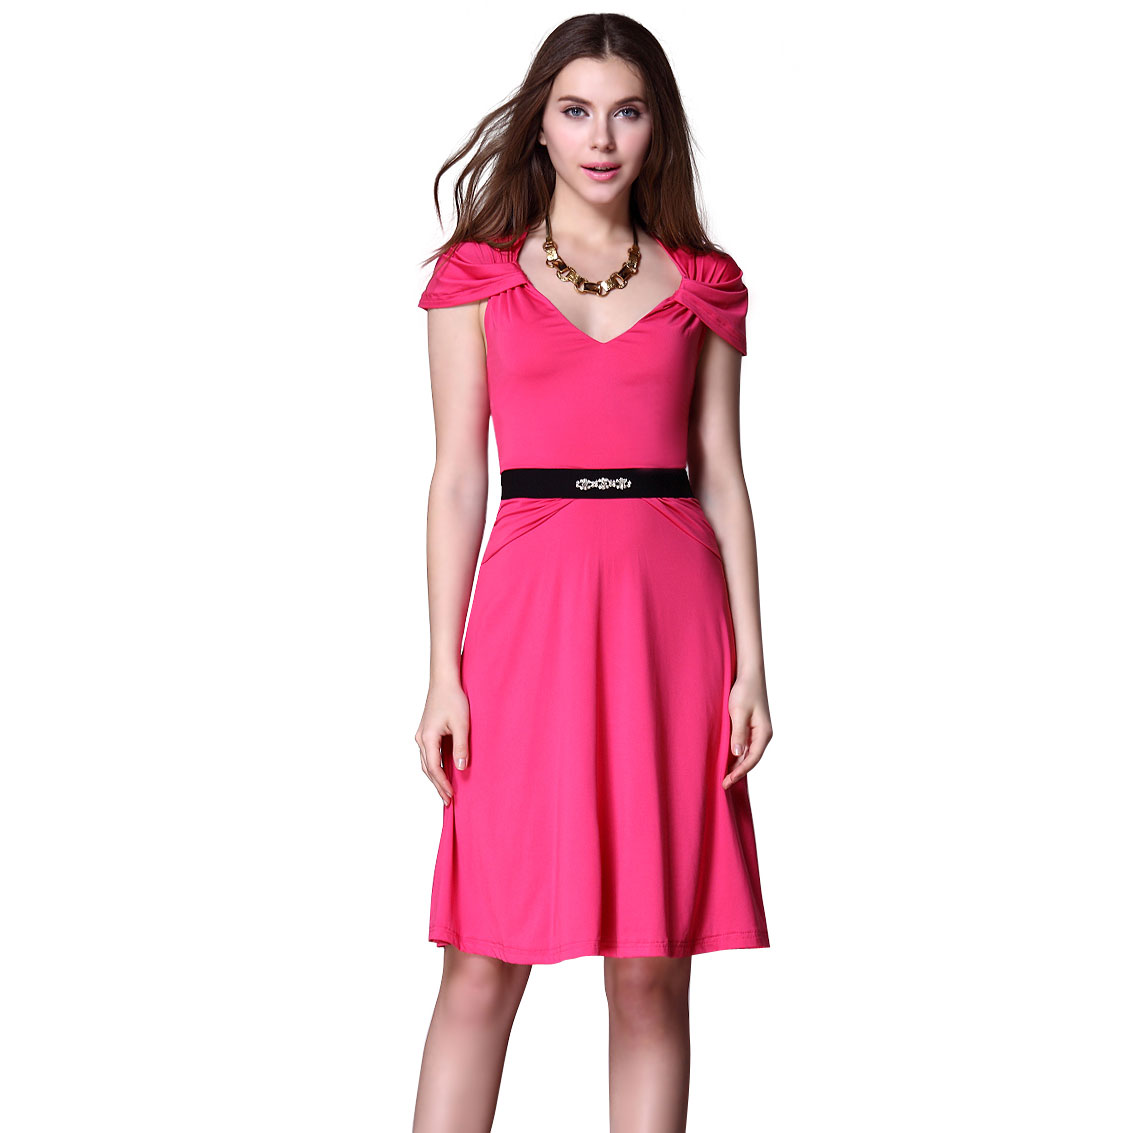 Ever-Pretty Ever Pretty Stretchy Cap Sleeve Knee Length Hot Pink Casual Day Dress 03891 at Sears.com